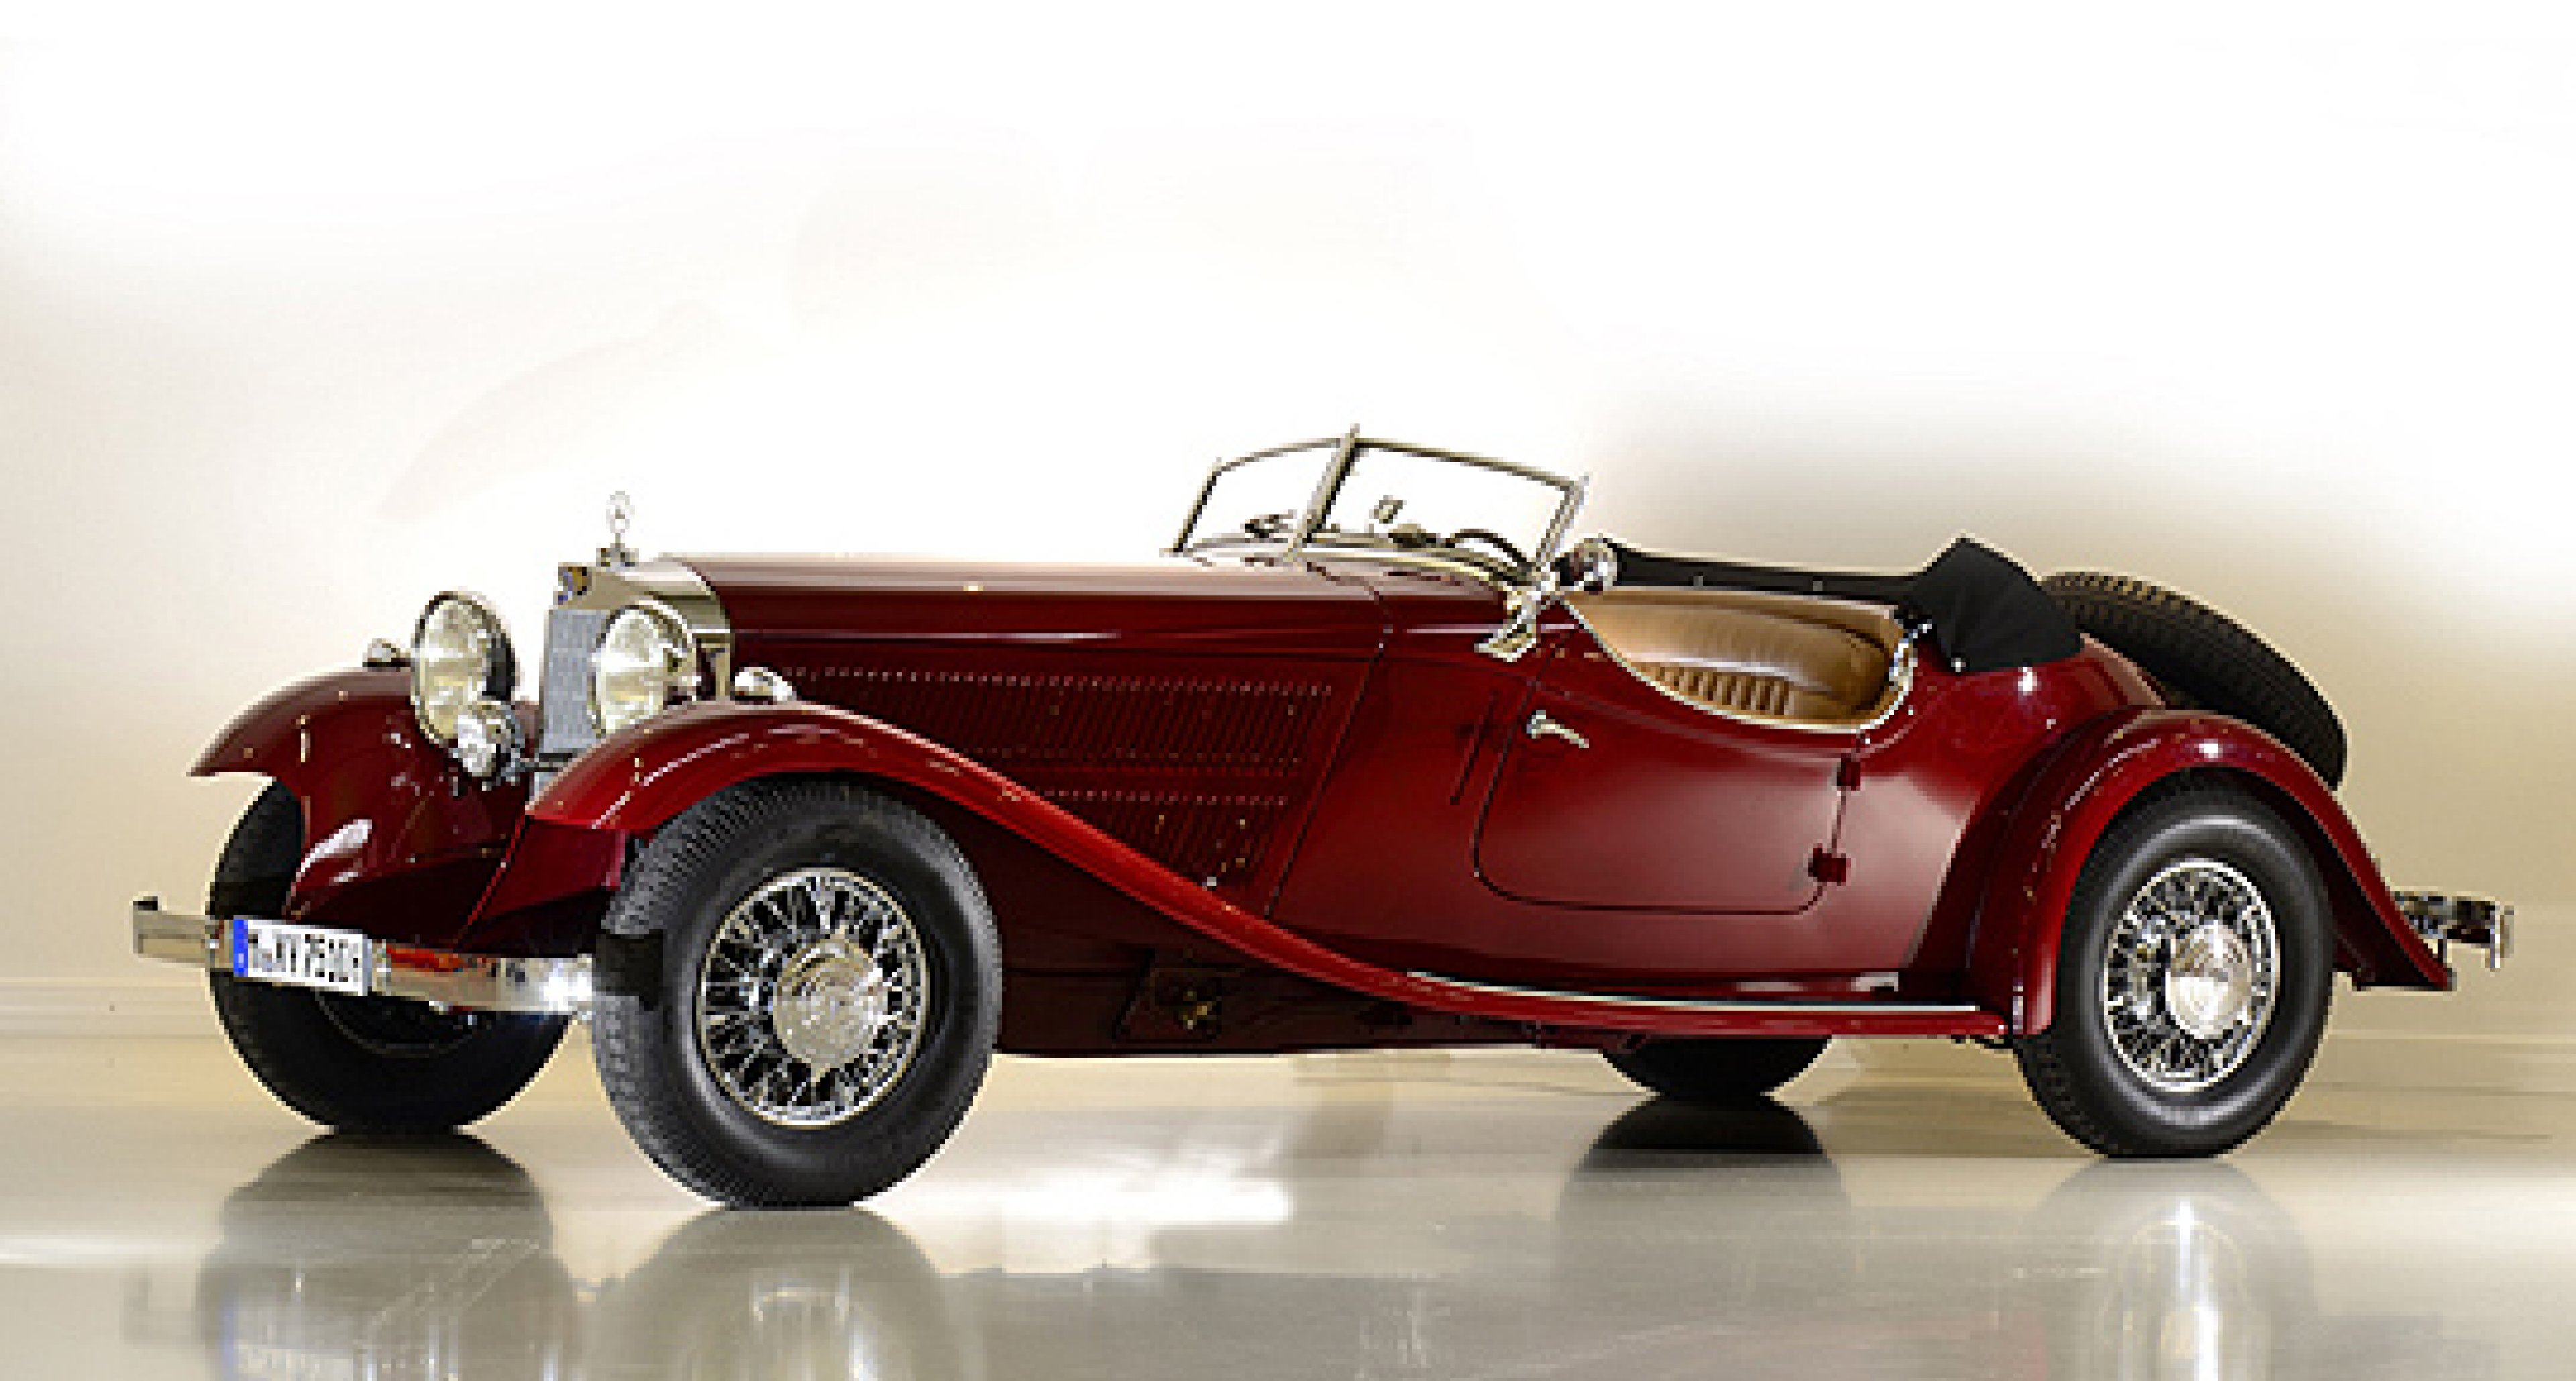 Kidston to Sell Gunter Sachs' Mercedes-Benz 380 Roadster